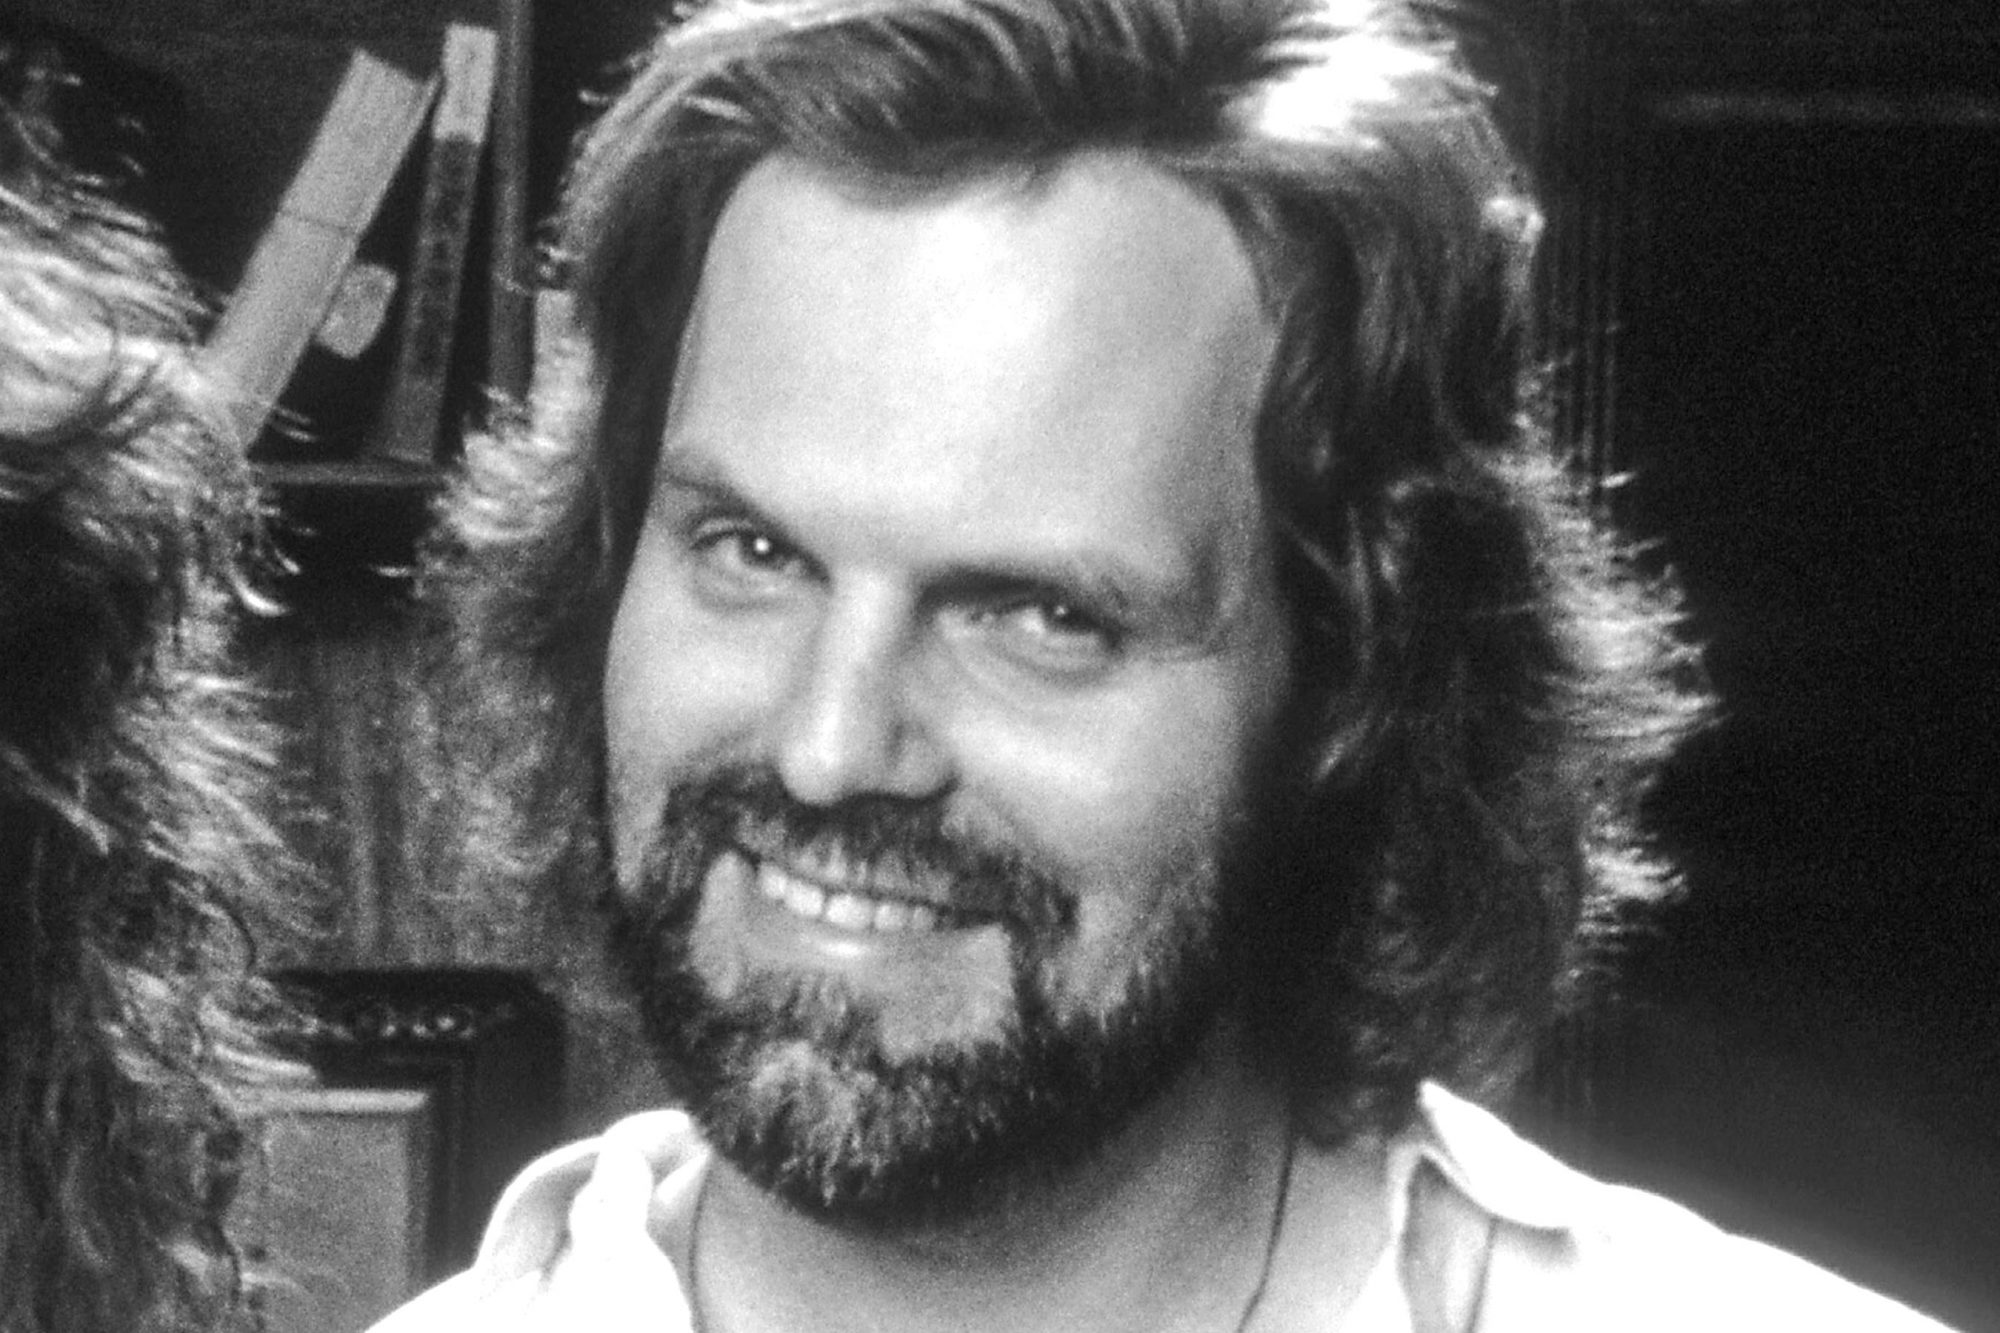 Eva La Rue And John Carl Buechler In 'Ghoulies III: Ghoulies Go To College'